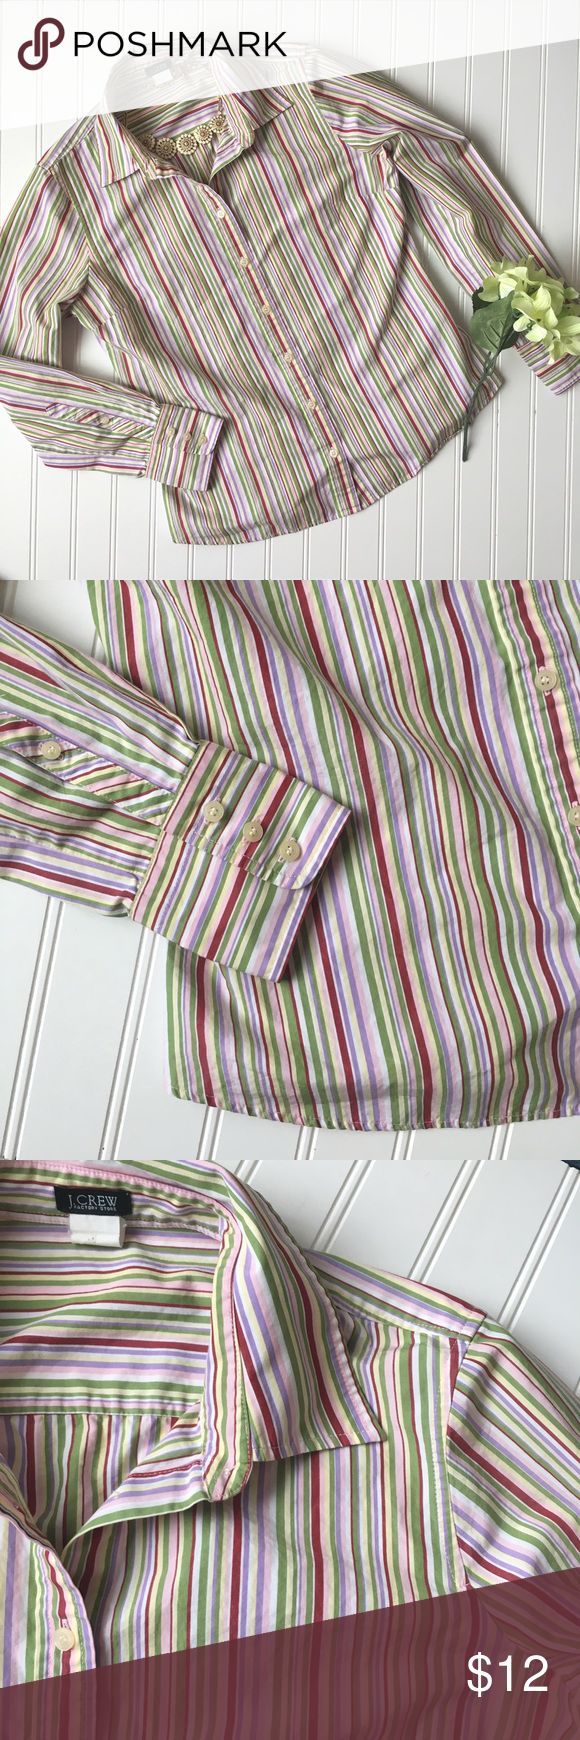 """J. Crew factory outlet striped button up blouse! M Multicolored striped button up blouse from J. Crew. Pinks, greens, yellow stripes and it has long sleeves. Stiff, structured fabric. Cotton  J. Crew // Medium // B 19"""" L 23.5"""" // J. Crew Factory Tops Button Down Shirts"""